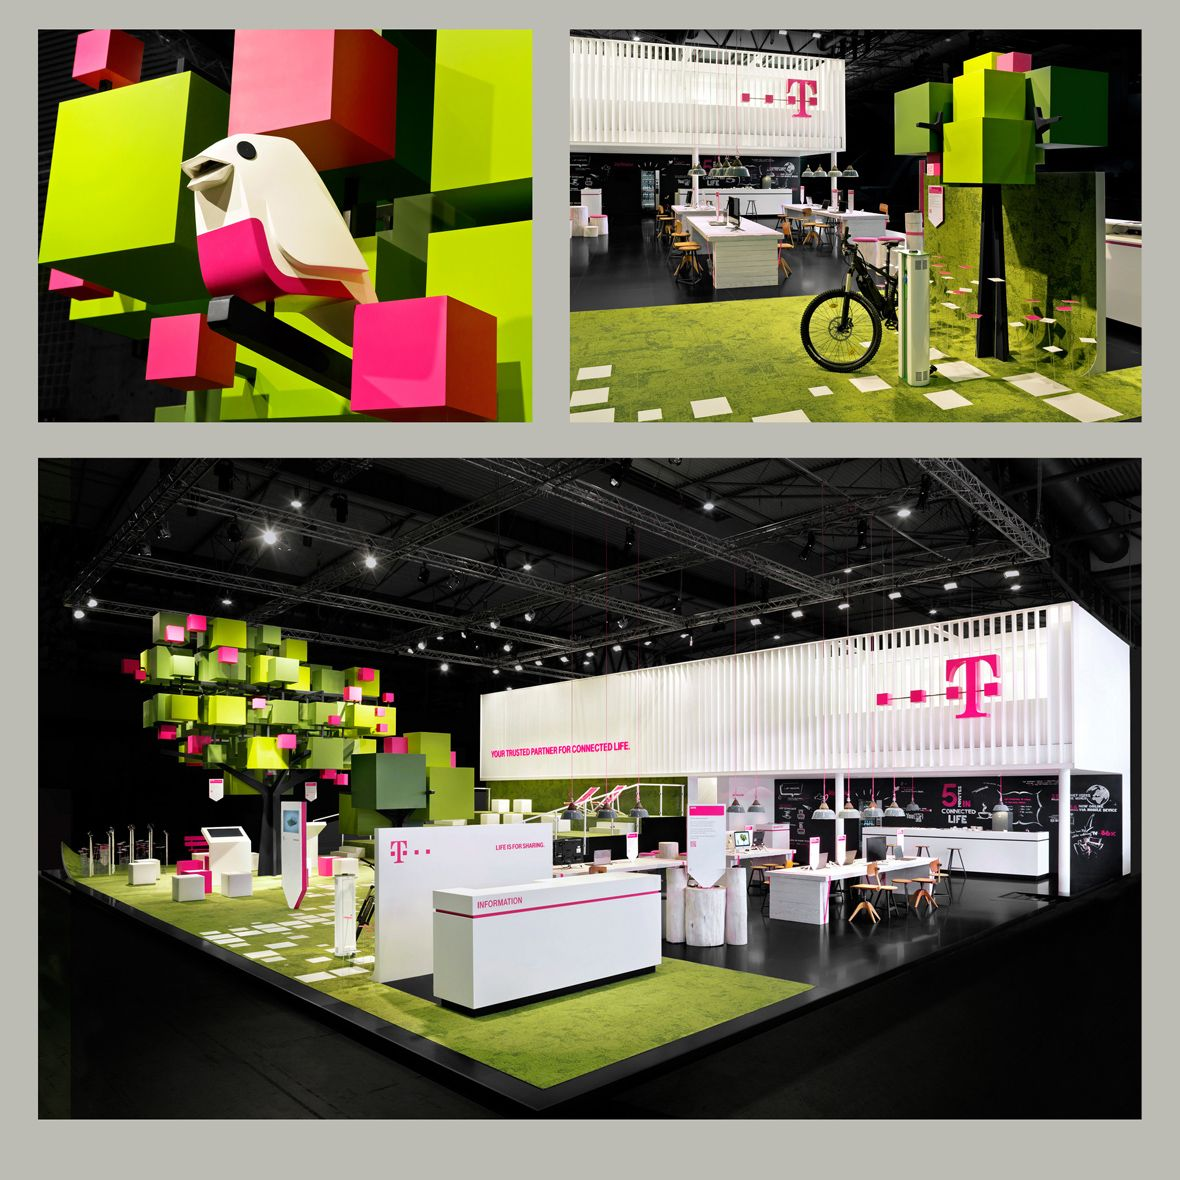 Exhibition Stand Games Ideas : Telekom mwc ブースデザイン と デザイン